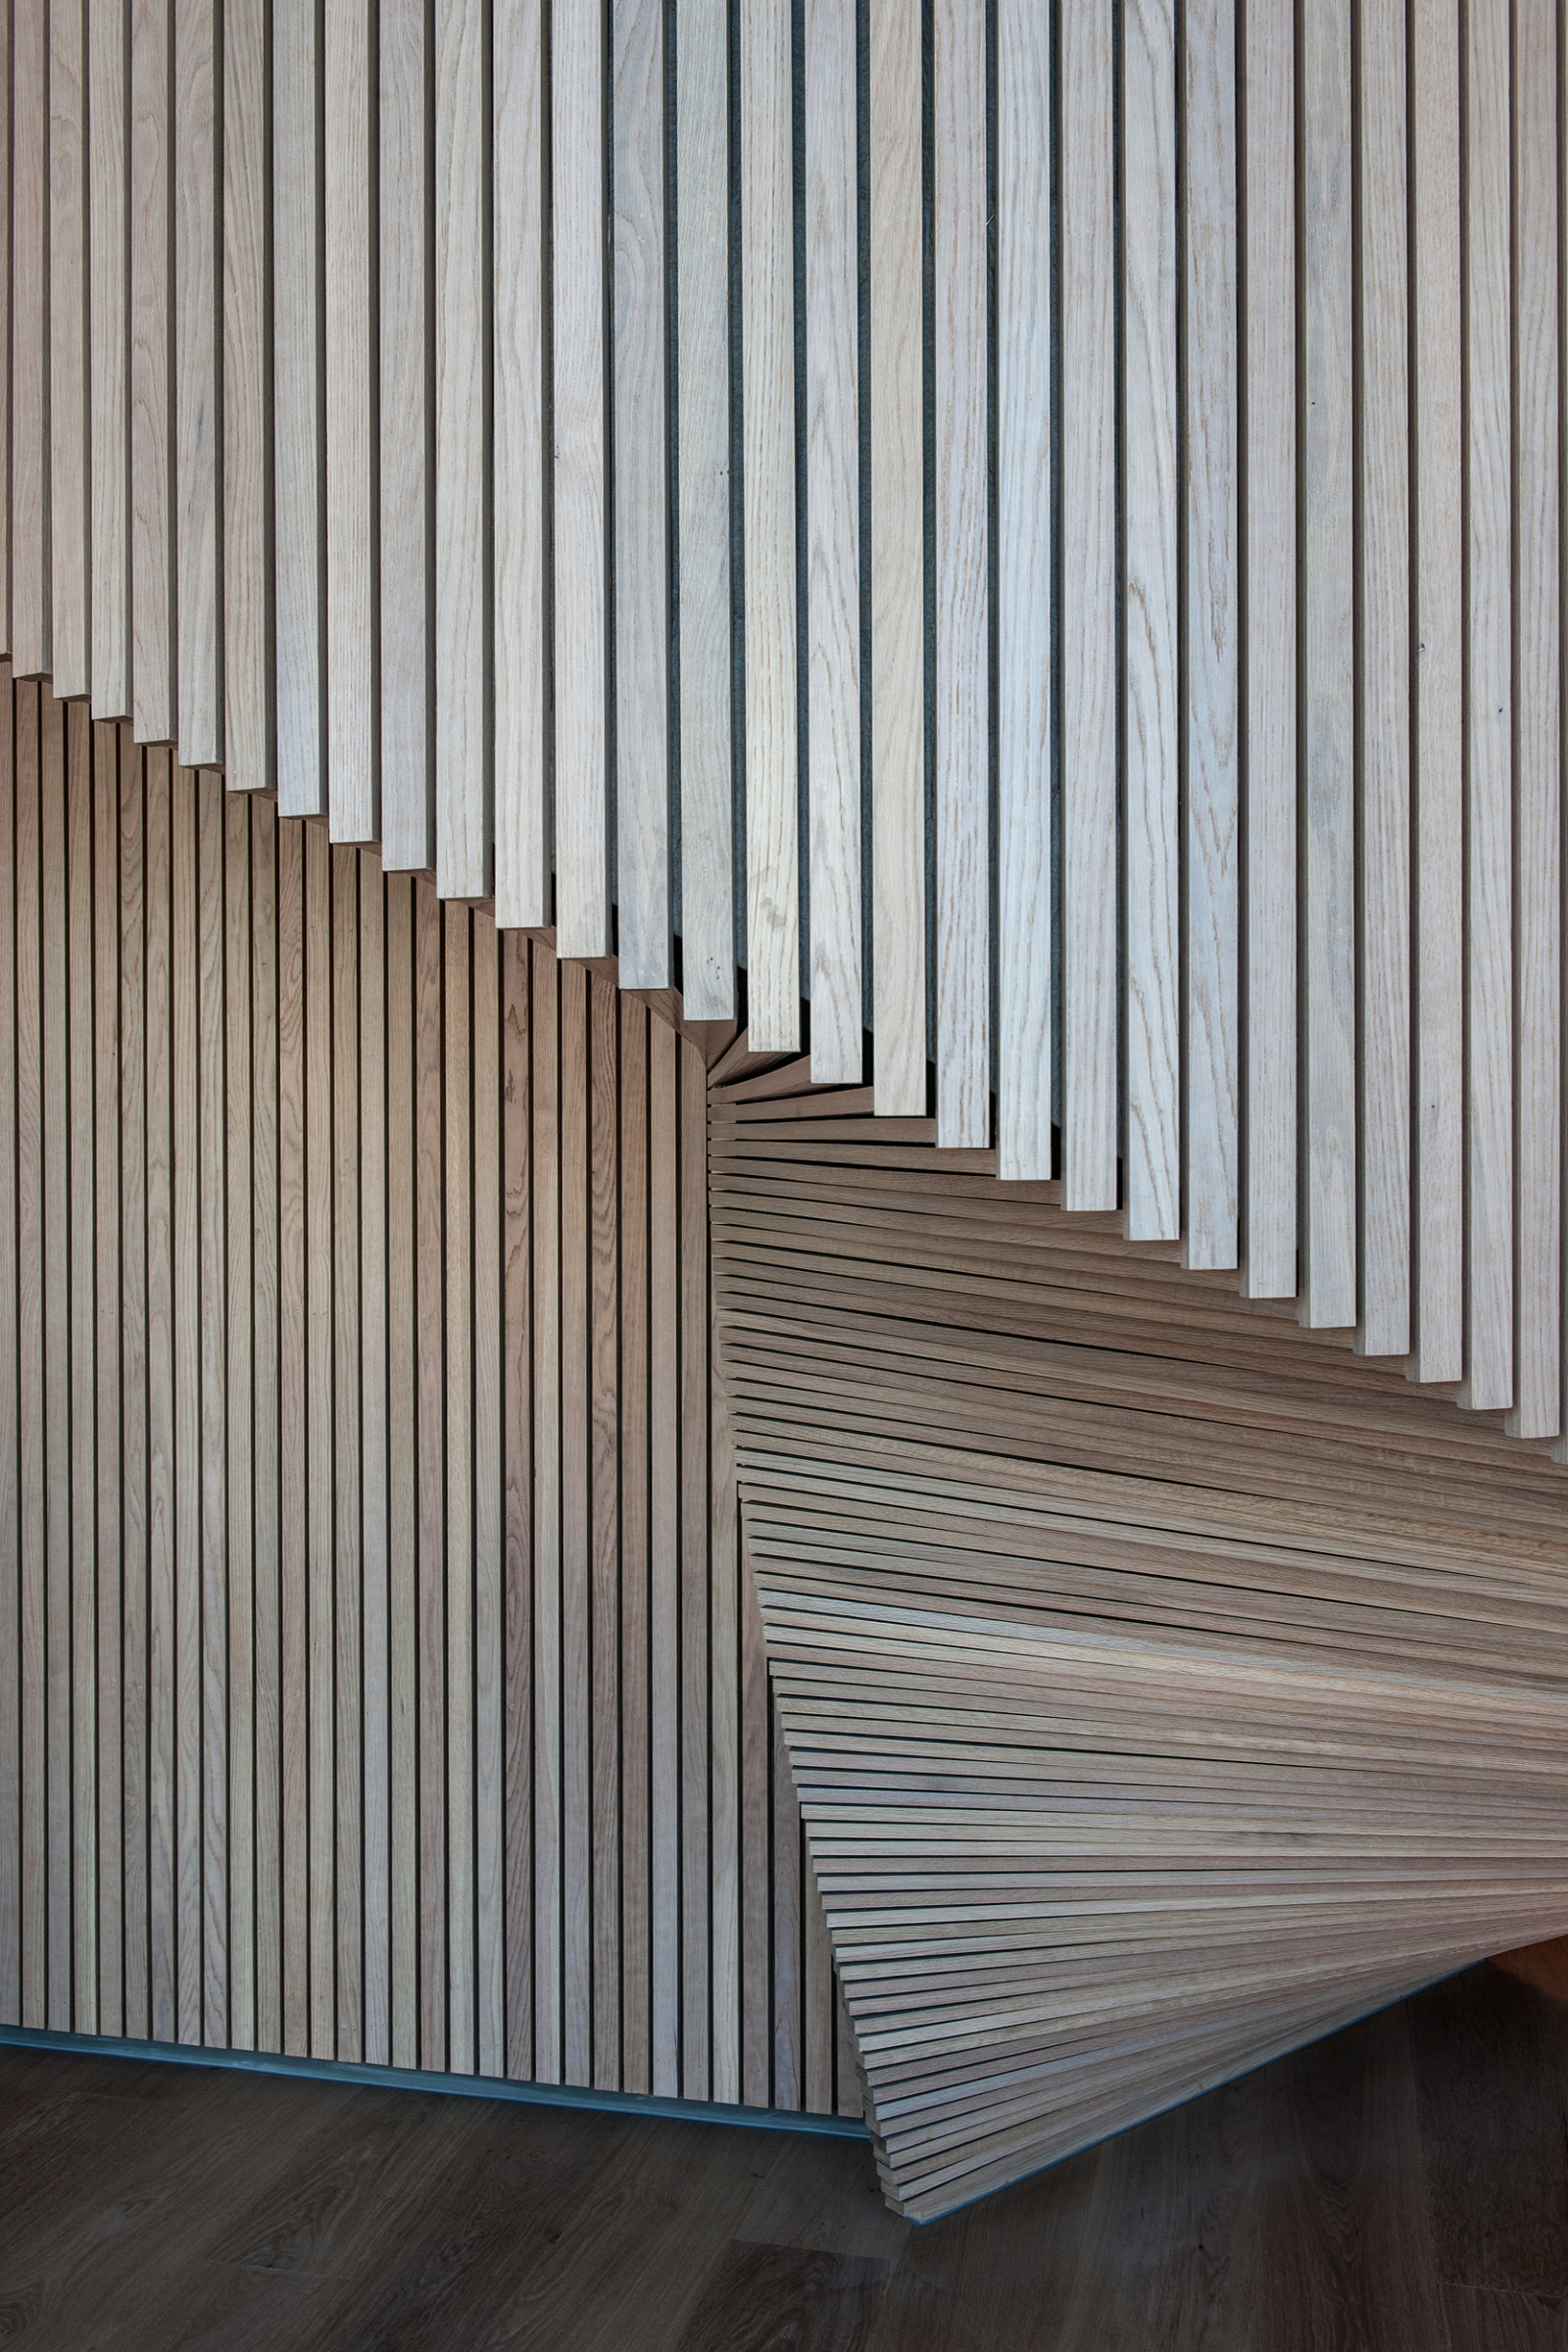 Dark, Arkitekter, Dark Arkitekter, Architects, Dark Architects, MVRDV, Bjørvika, Barcode, Oslo, Norge, Norway, Urban design, Office, Kontor, Pikselert, Pixelated, interior, interiør, wood, detail, detalj, treverk, tre